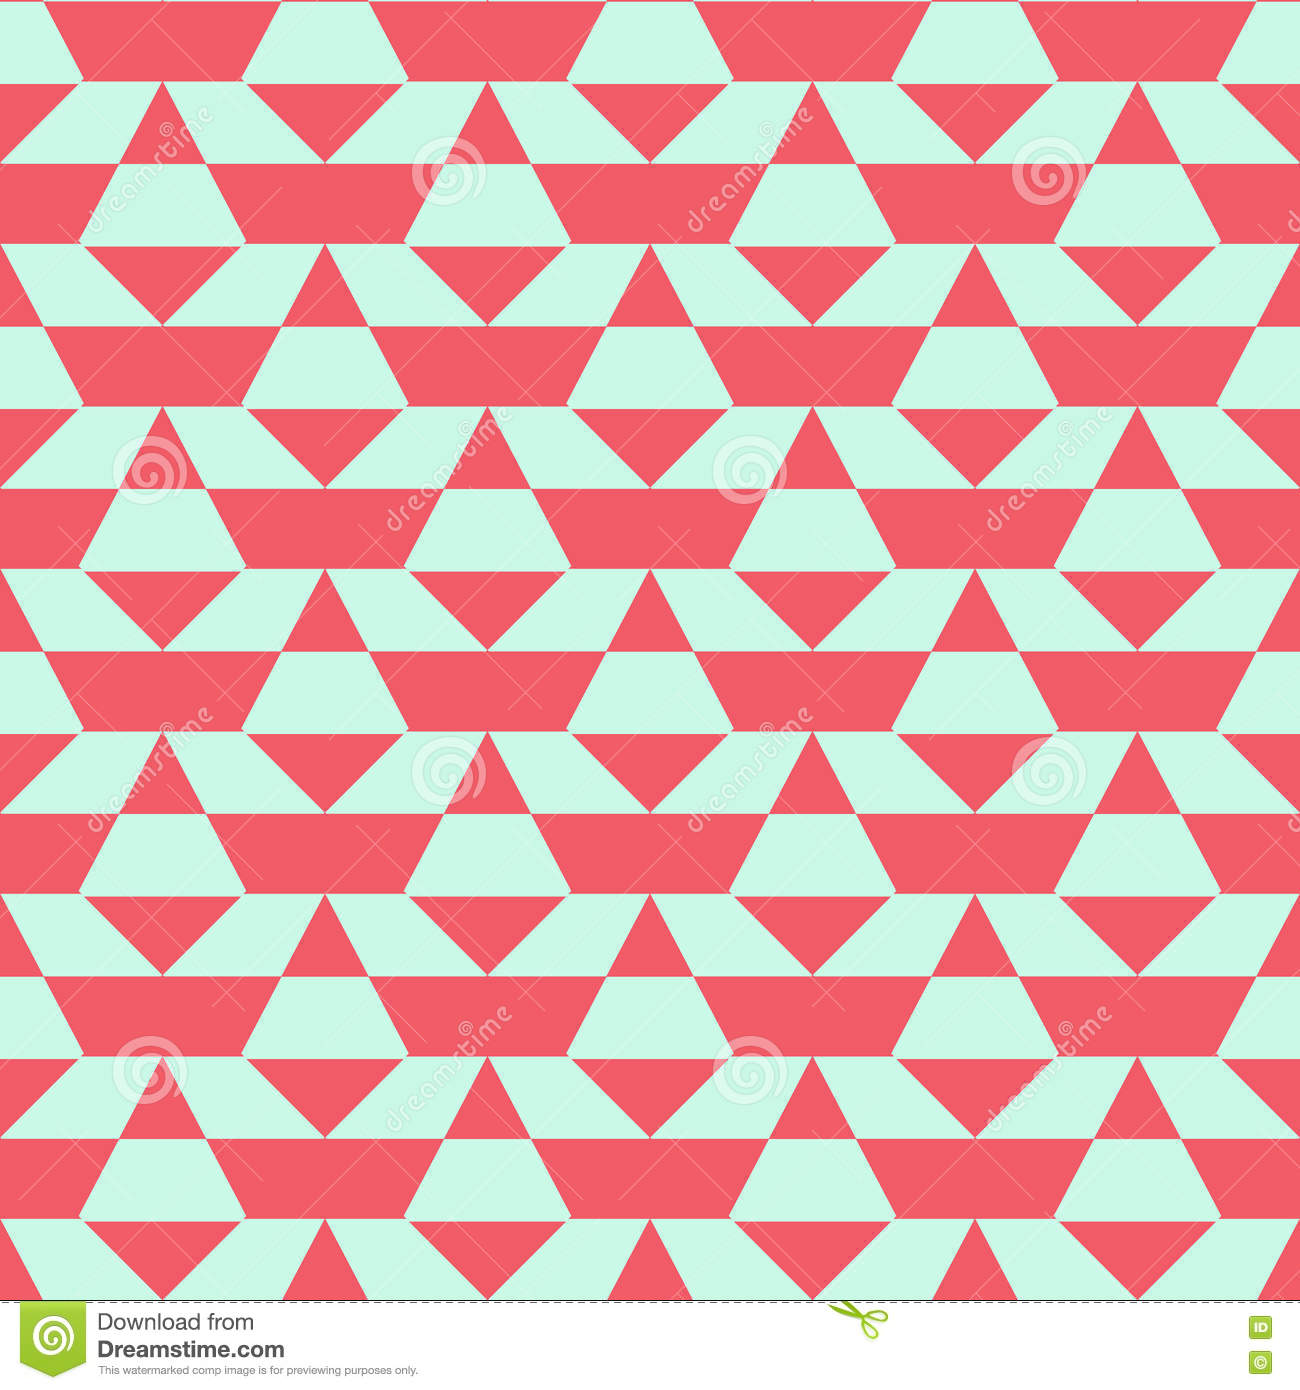 Pastel Color Blocked Pattern Stock Vector - Illustration of edgy